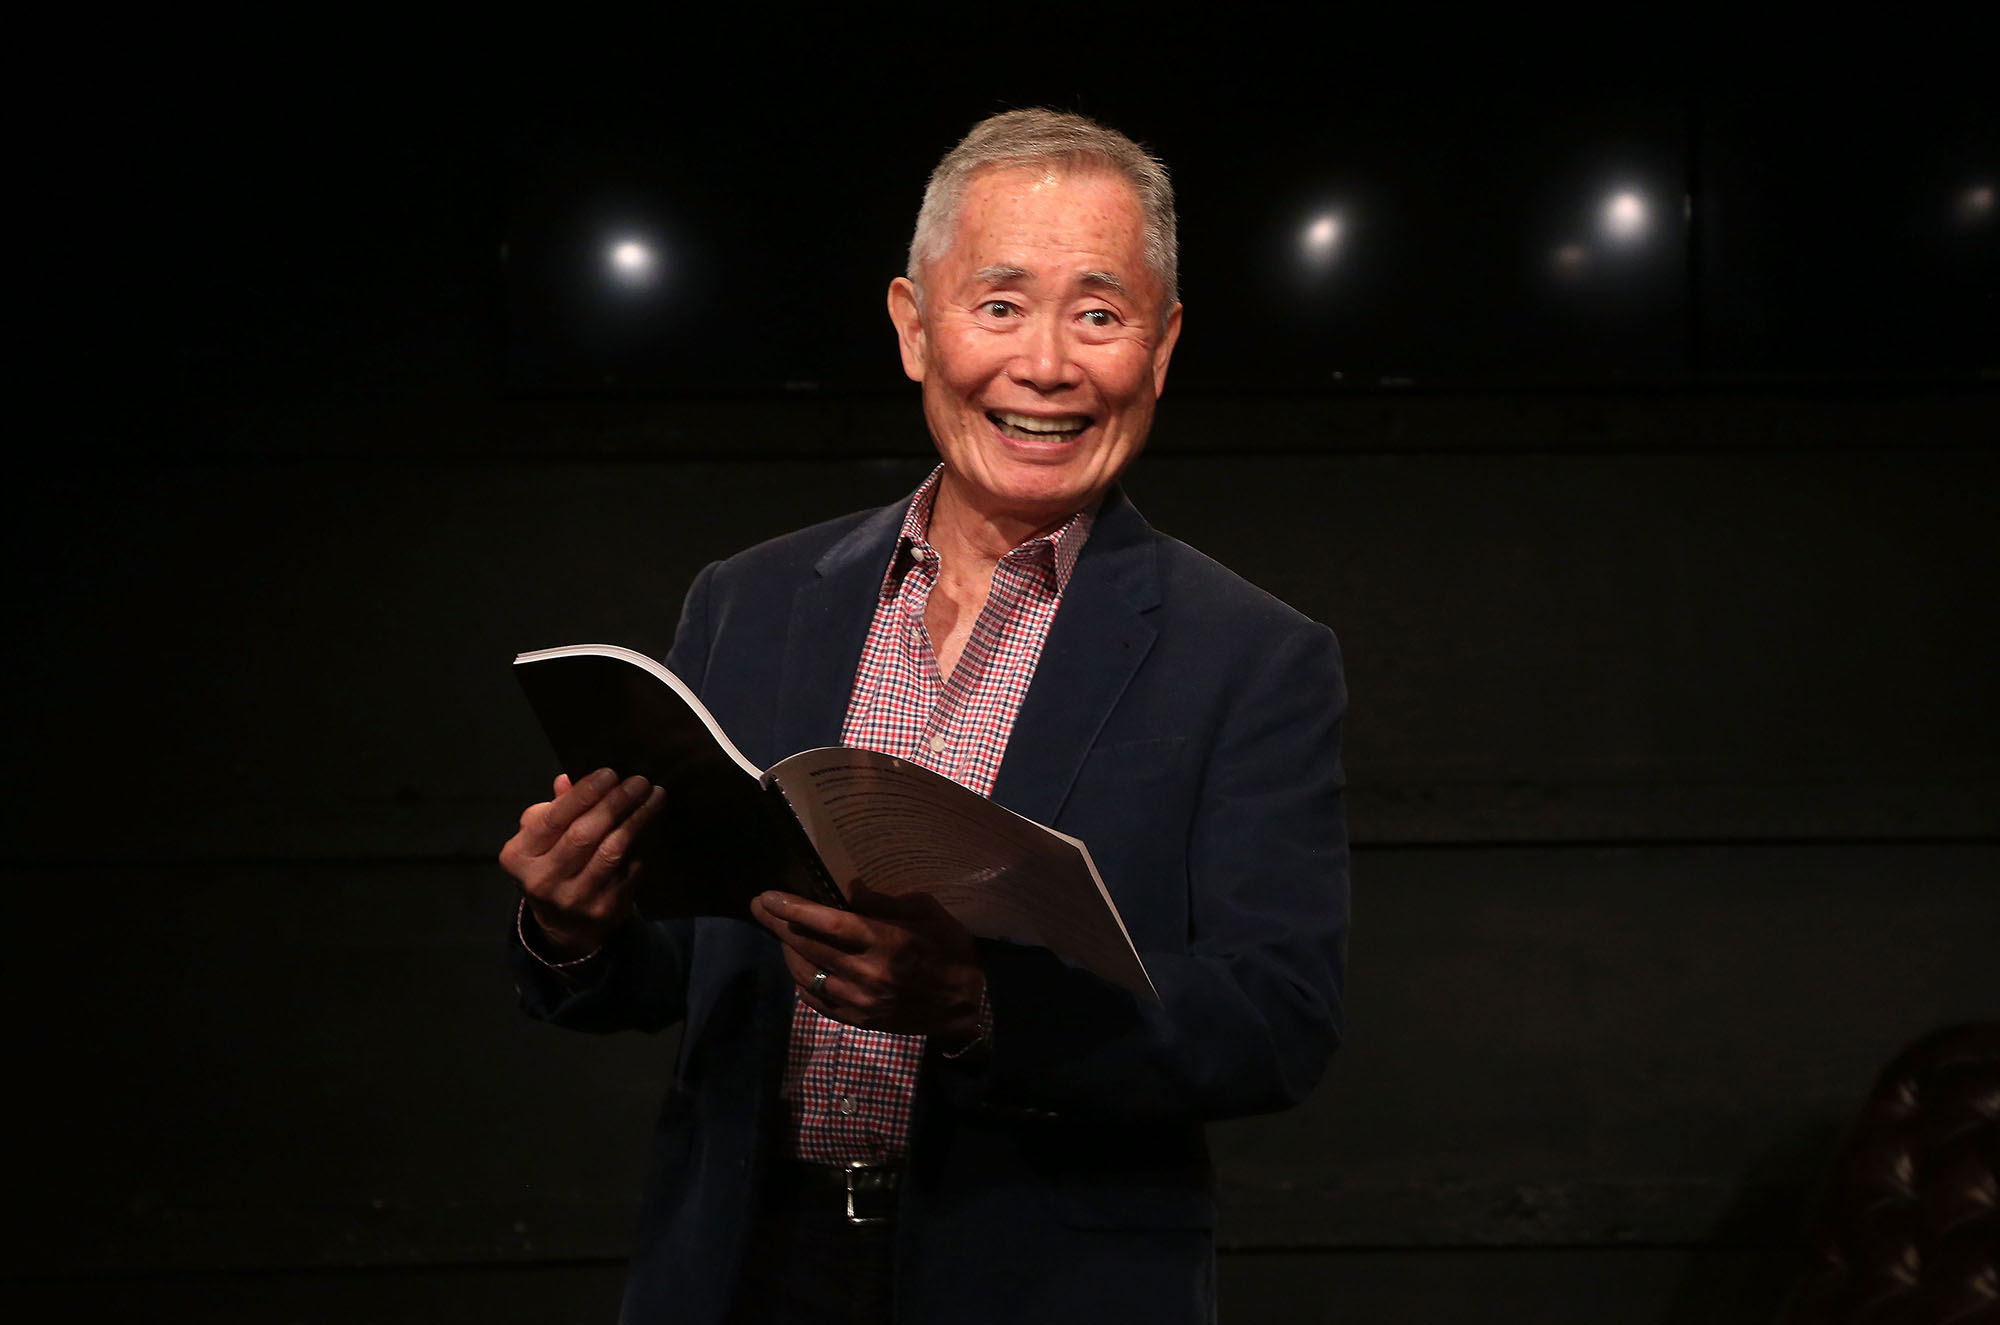 George Takei performing in the new play  White Rabbit Red Rabbit  at The Westside Theatre on June 15, 2016 in New York City.